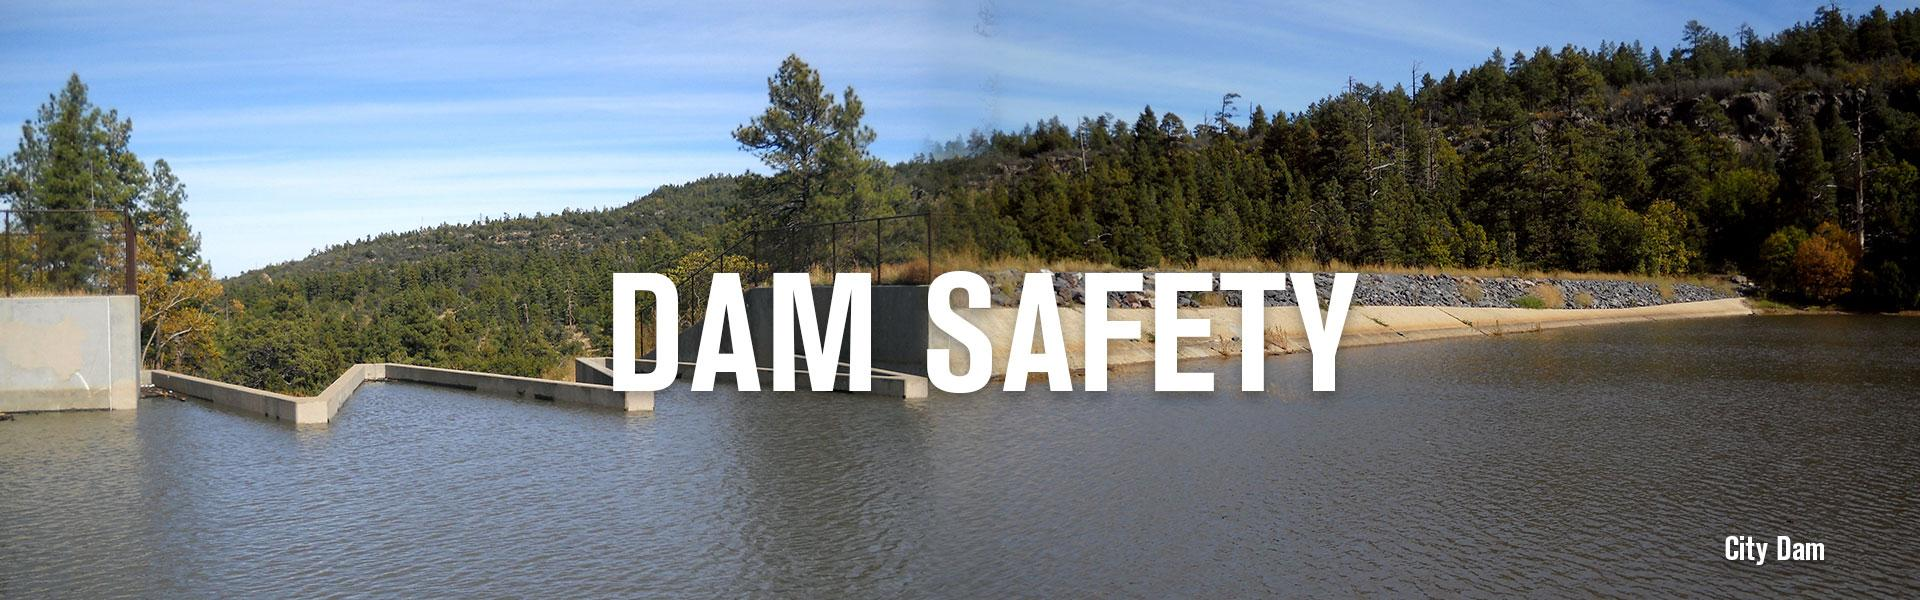 Dam Safety | Arizona Department of Water Resources